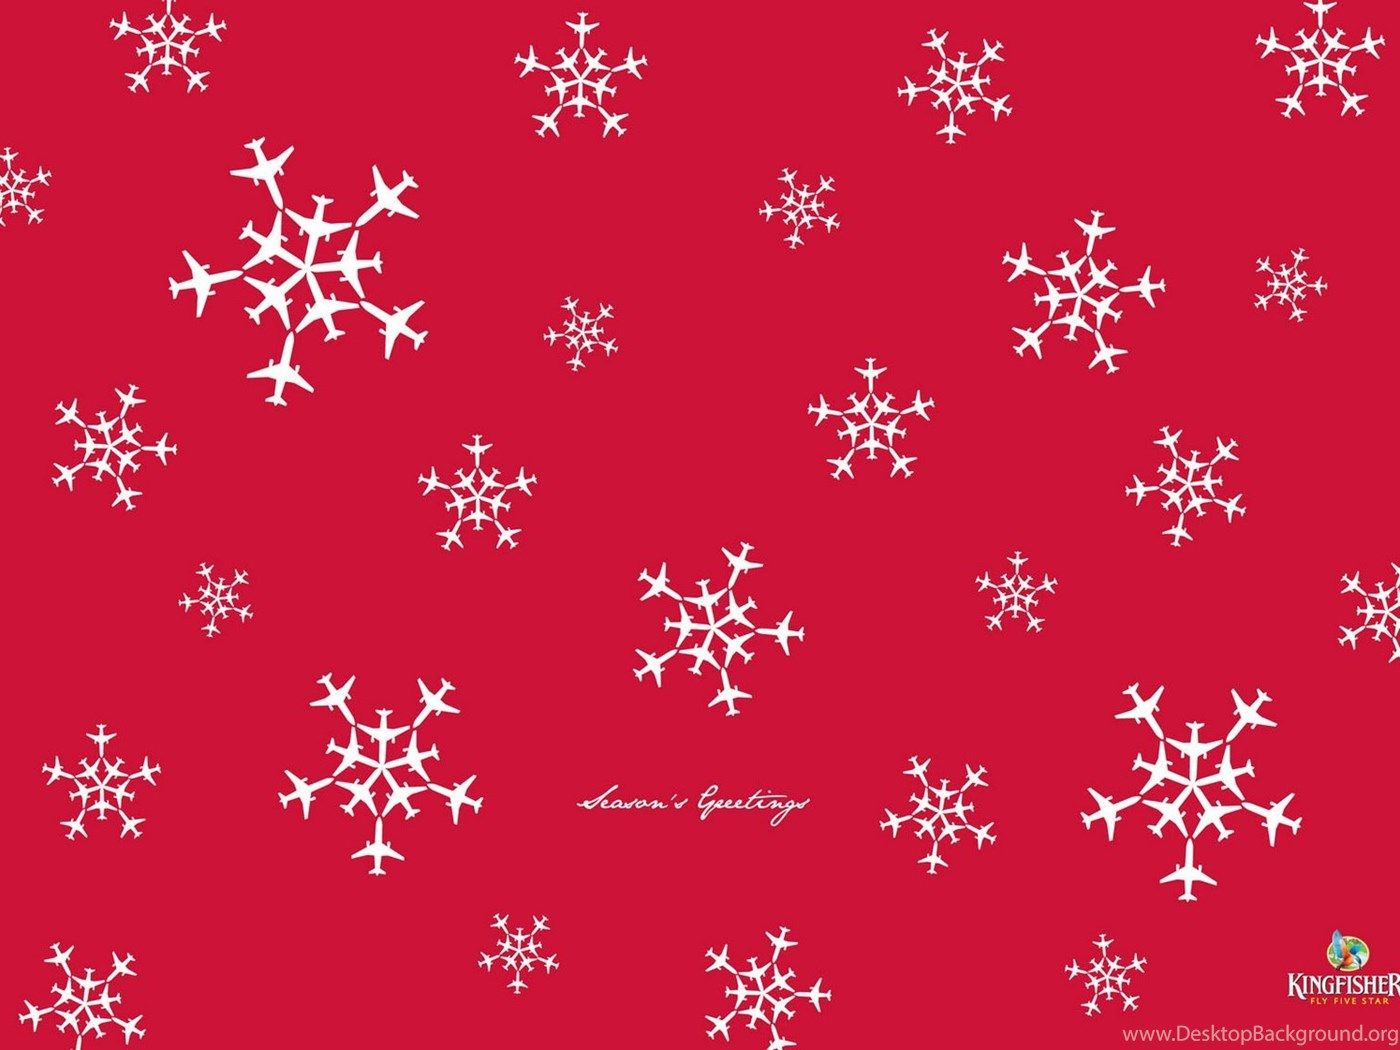 1400x1050 Christmas Wrapping Paper 4 Backgrounds Wallpapers Hivewallpaper.com ...